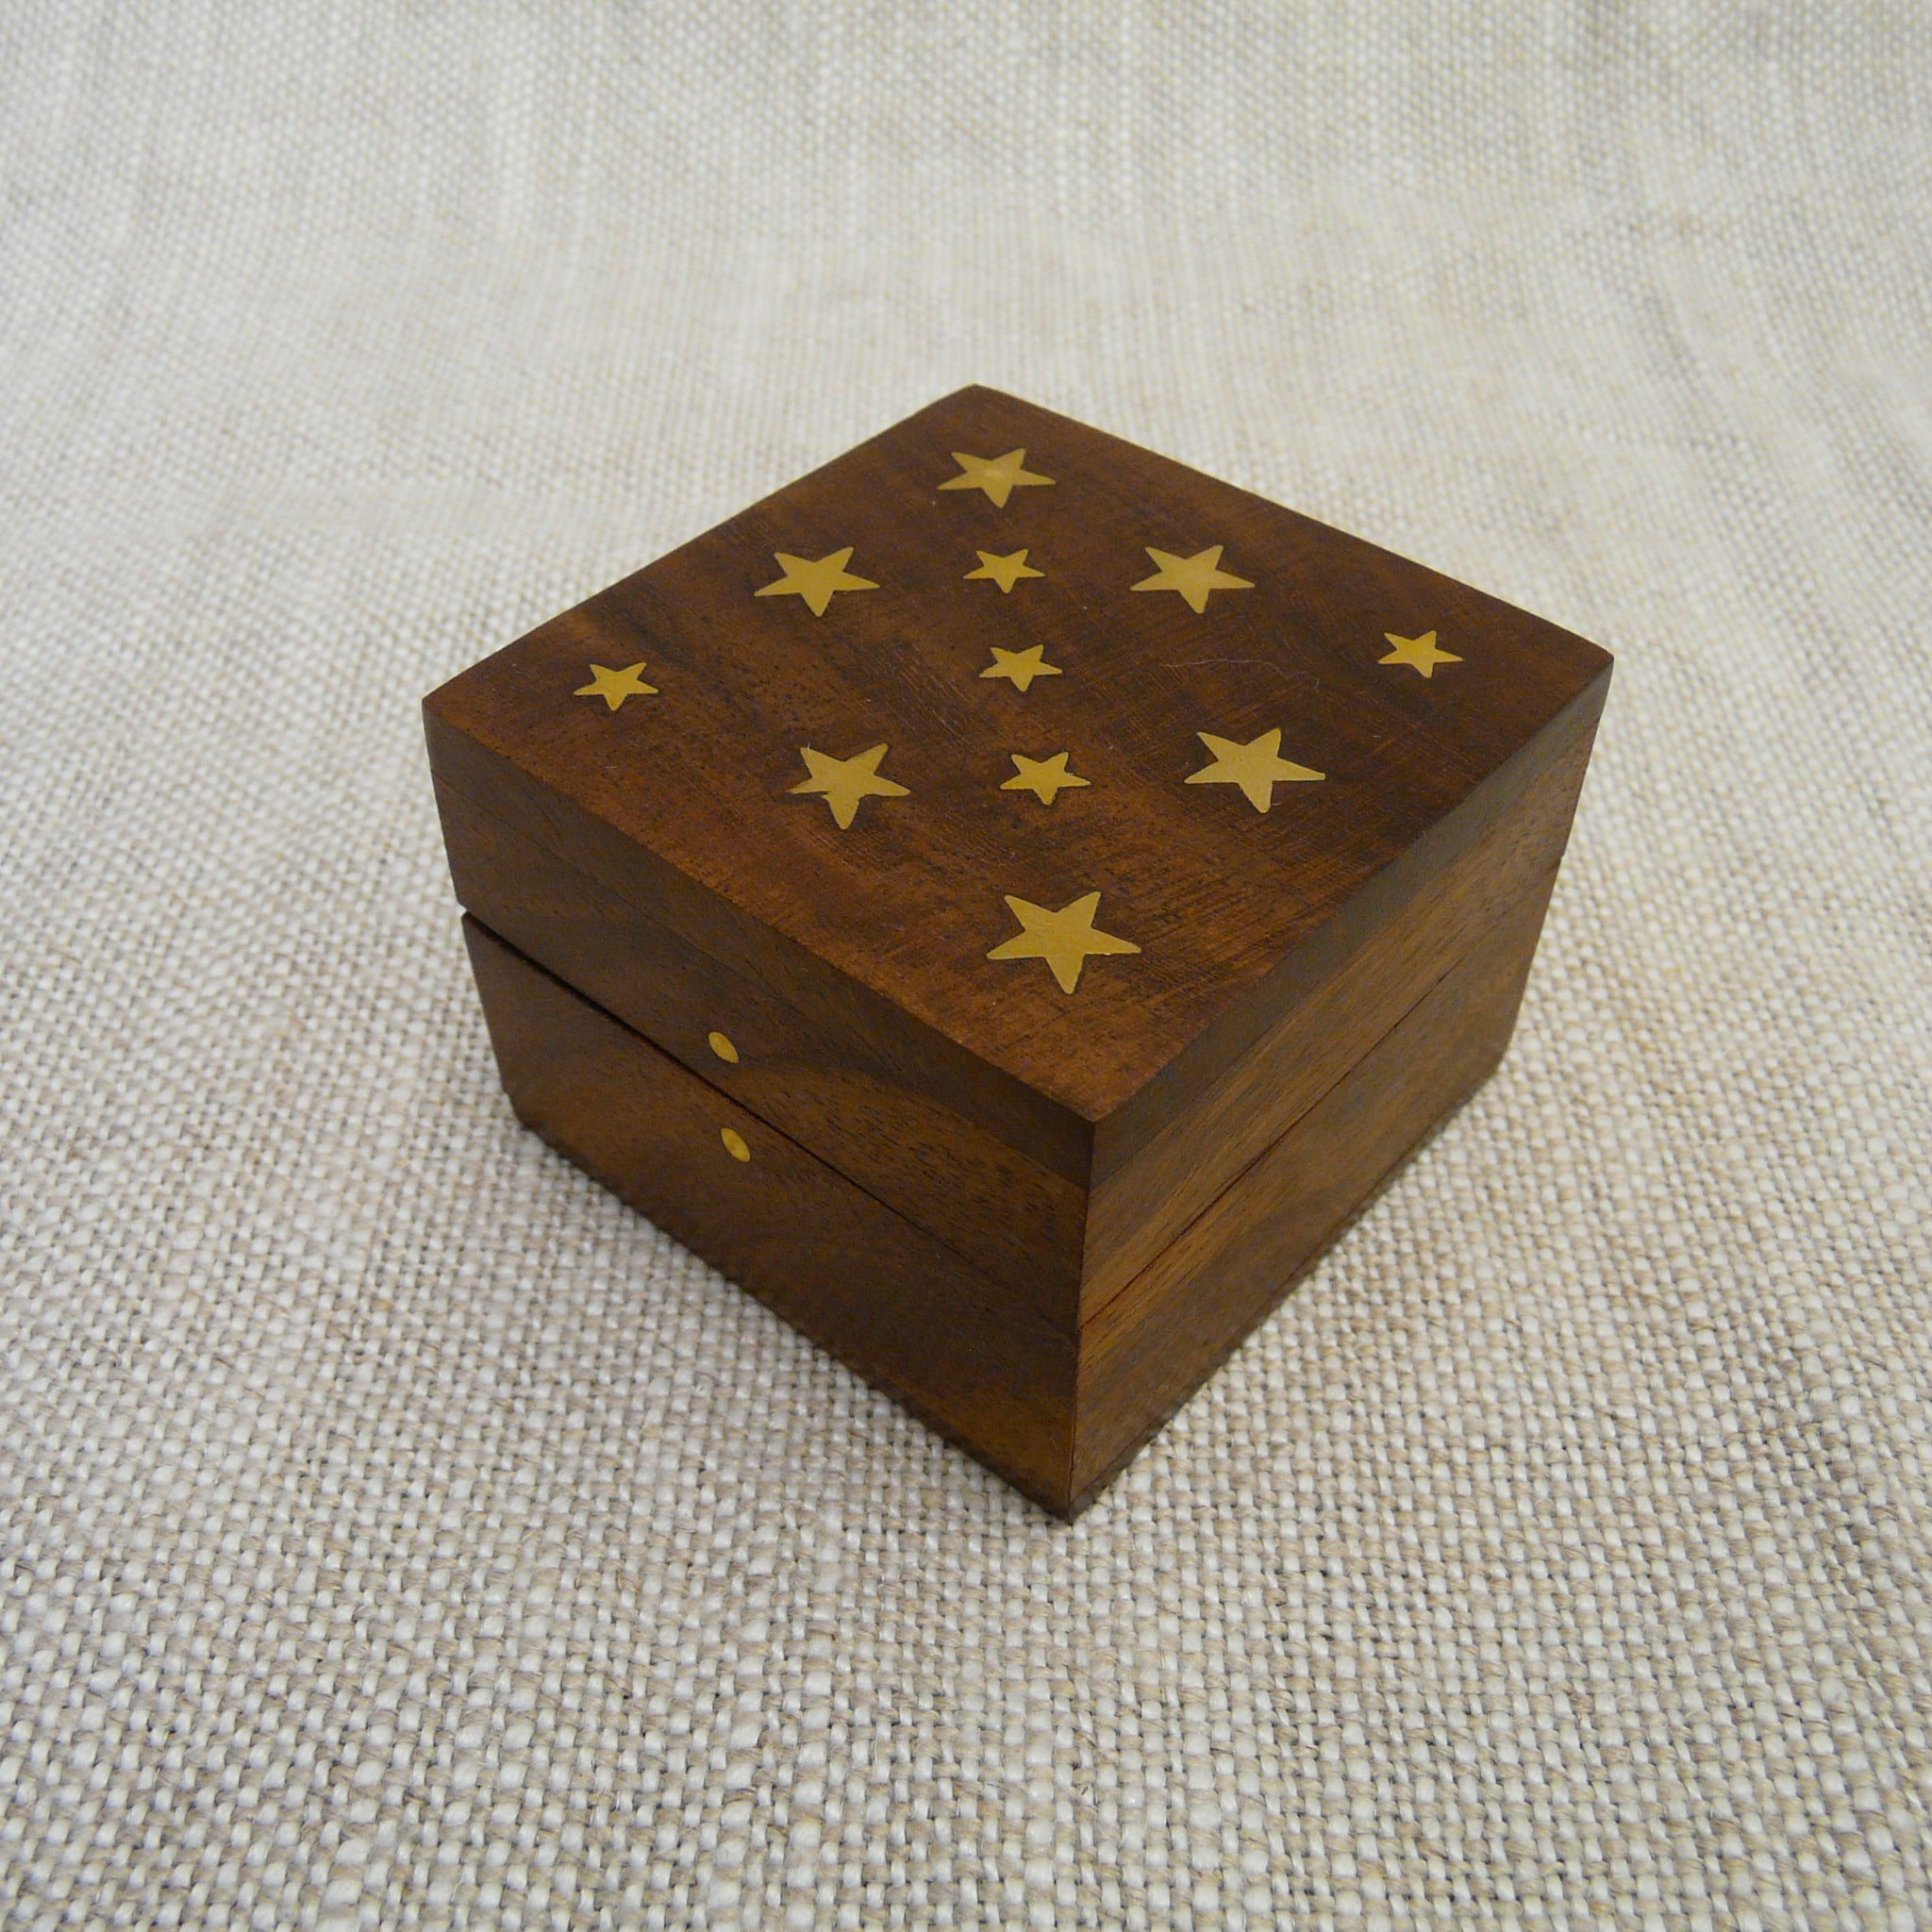 P1110066-fair-trade-sesham-wood-square-box-brass-stars-inlay